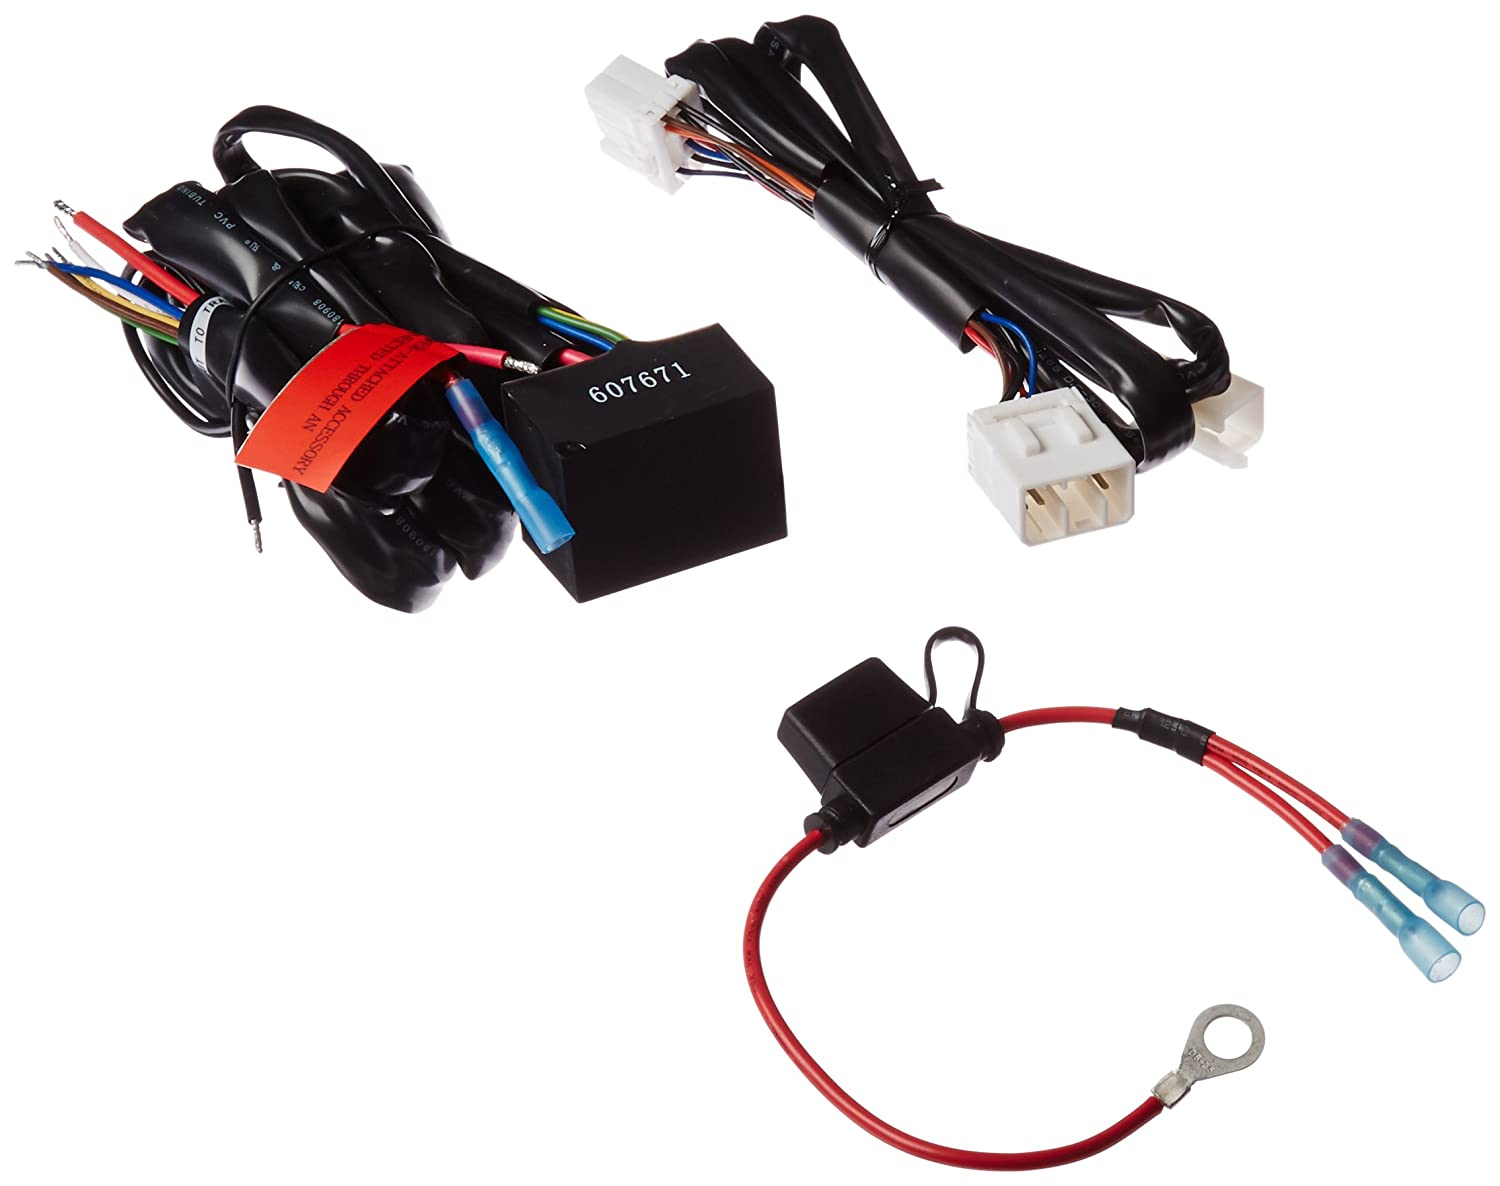 71DS9ycMD9L._SL1500_ amazon com kuryakyn 7672 plug & play trailer wiring relay harness  at edmiracle.co